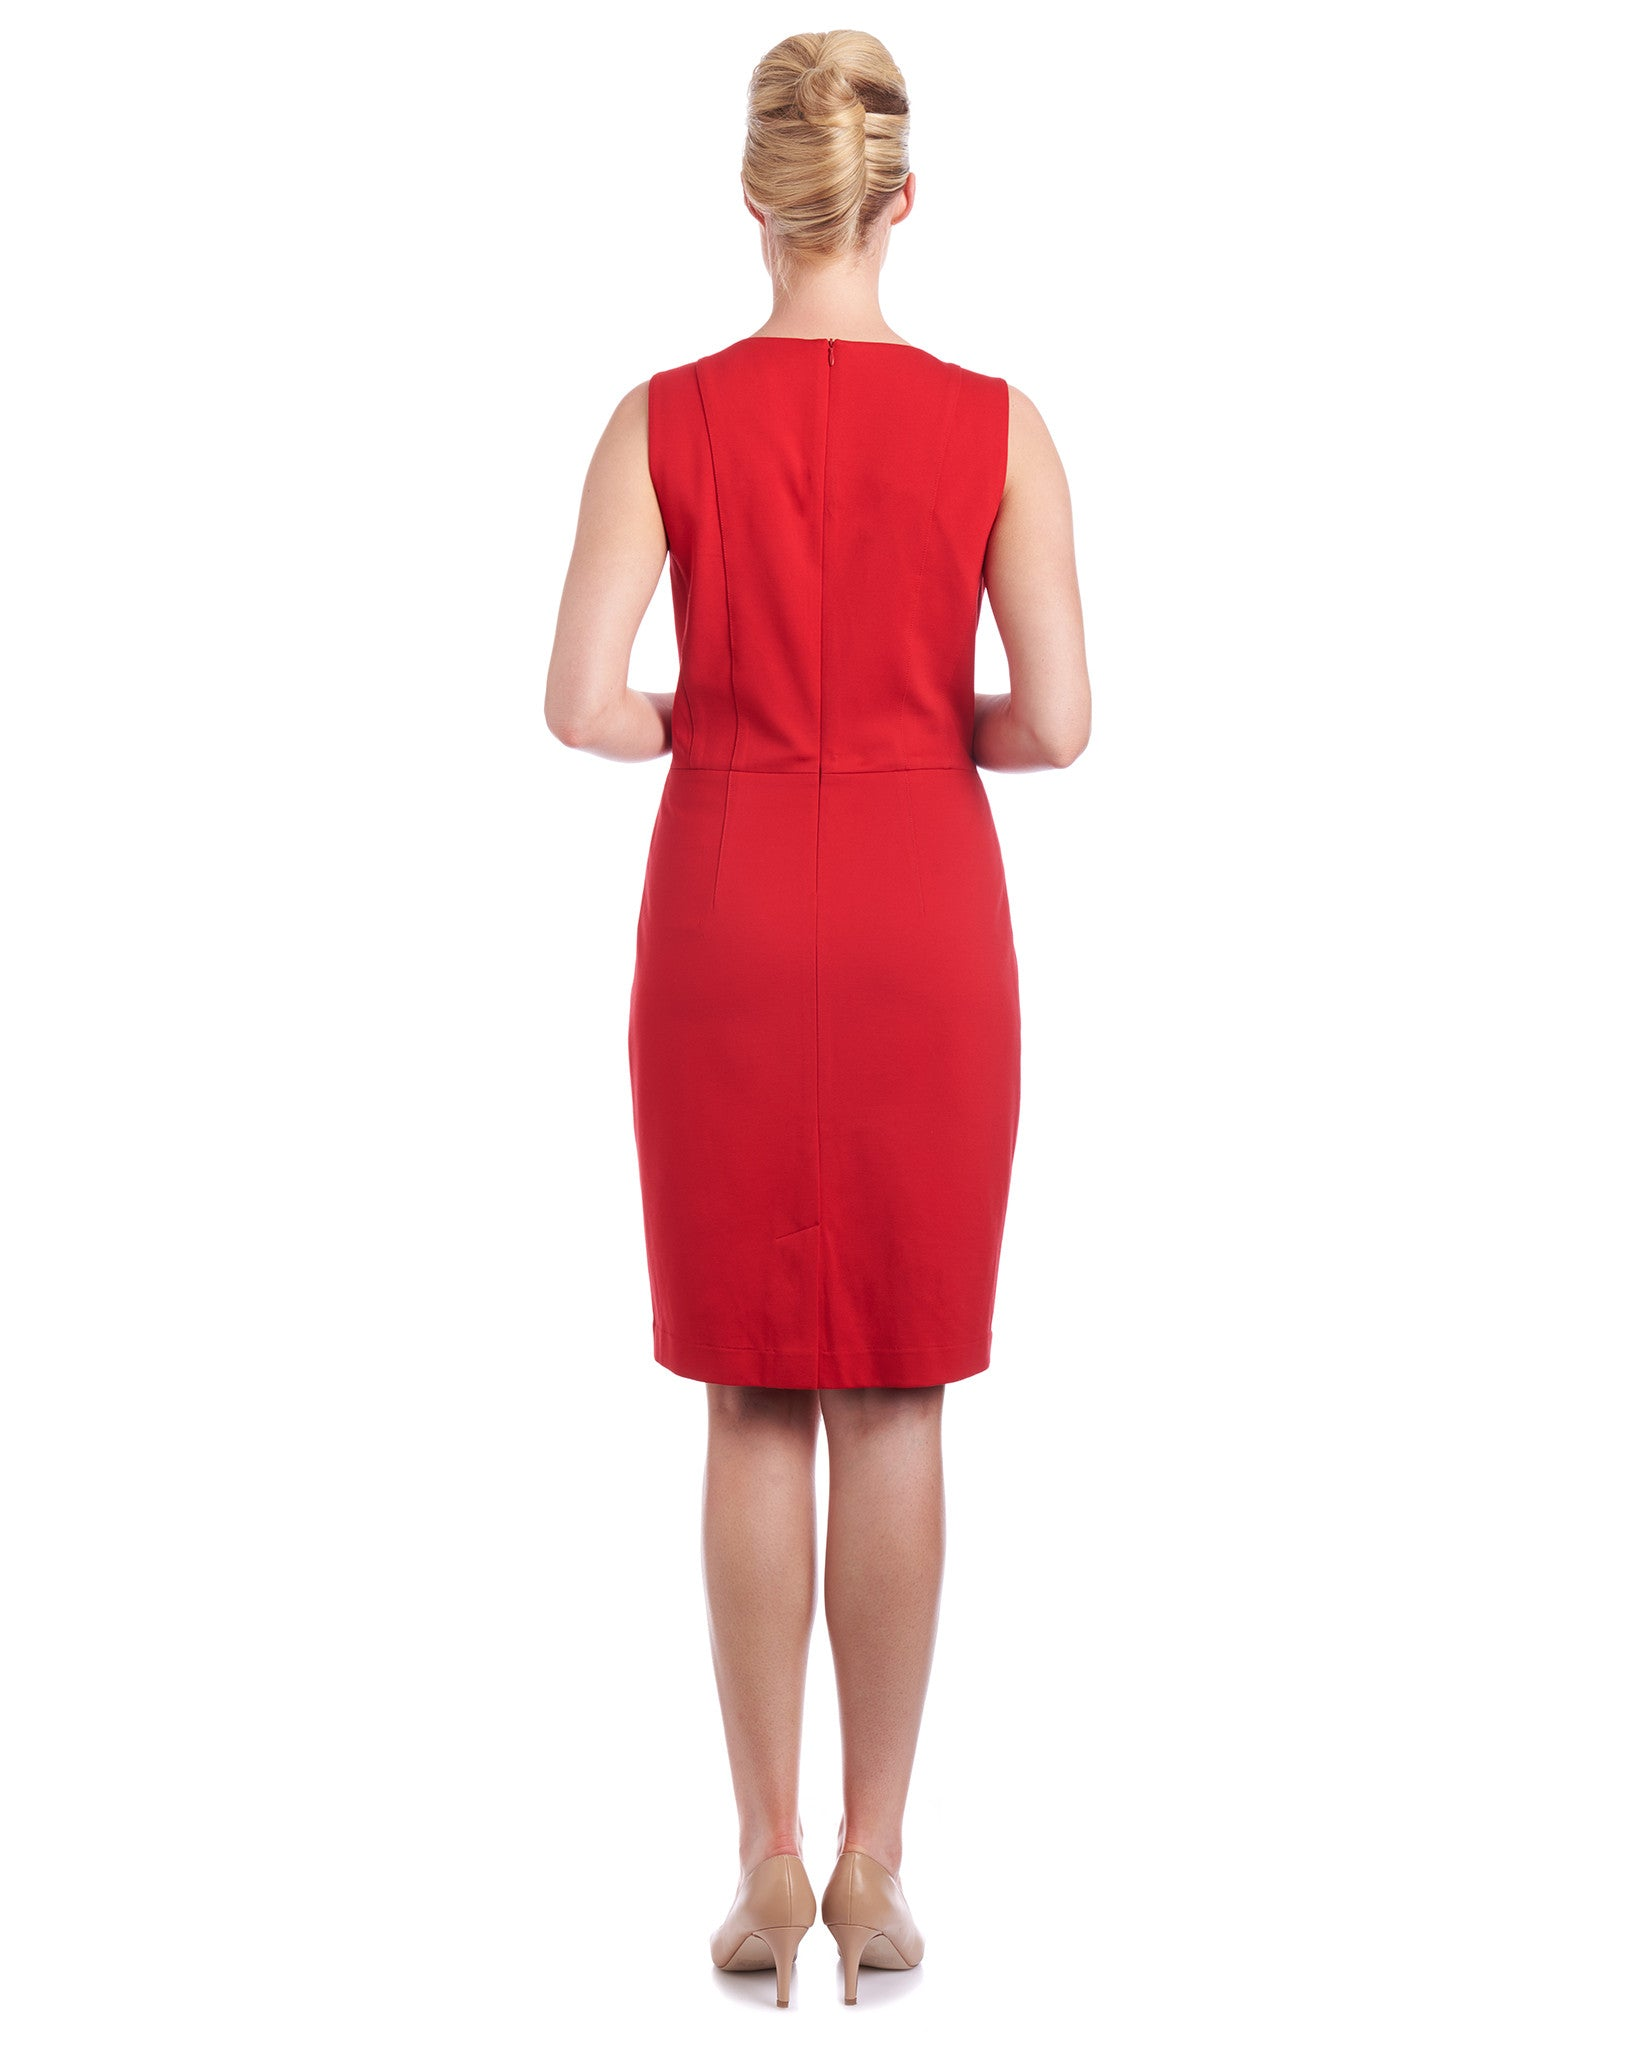 the tulip dress will flatter your body shape and have you feeling confident at work and play.